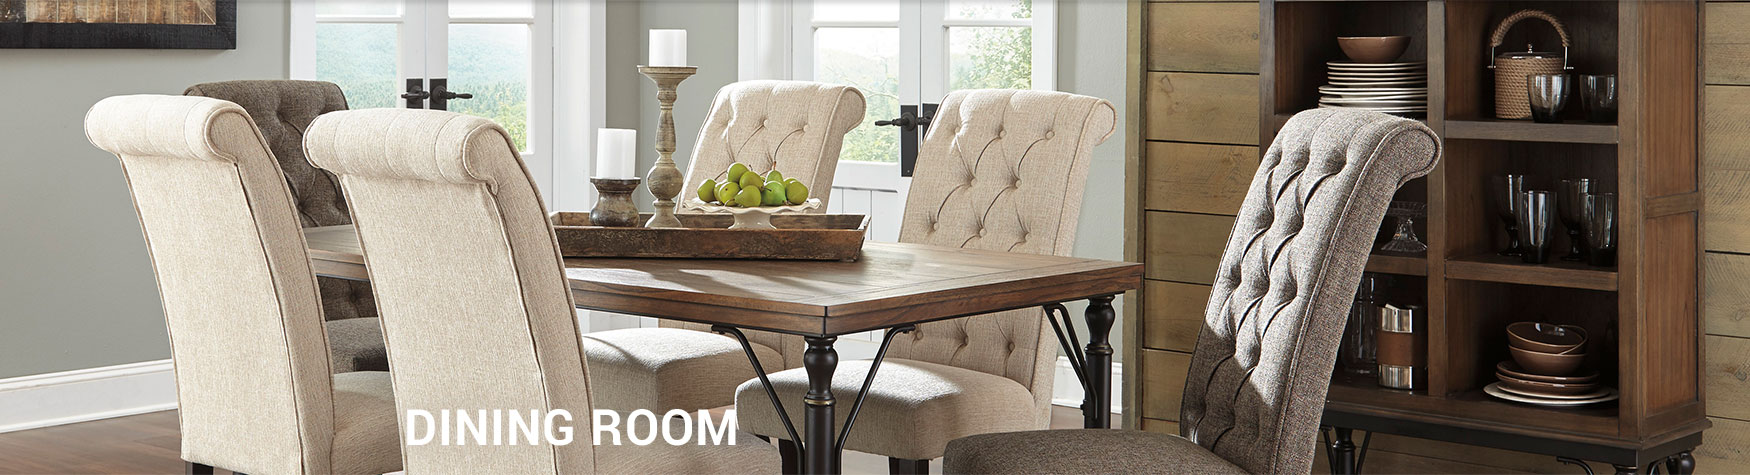 Dining Room Furniture On Sale In Spokane Valley Wa Post Falls Id